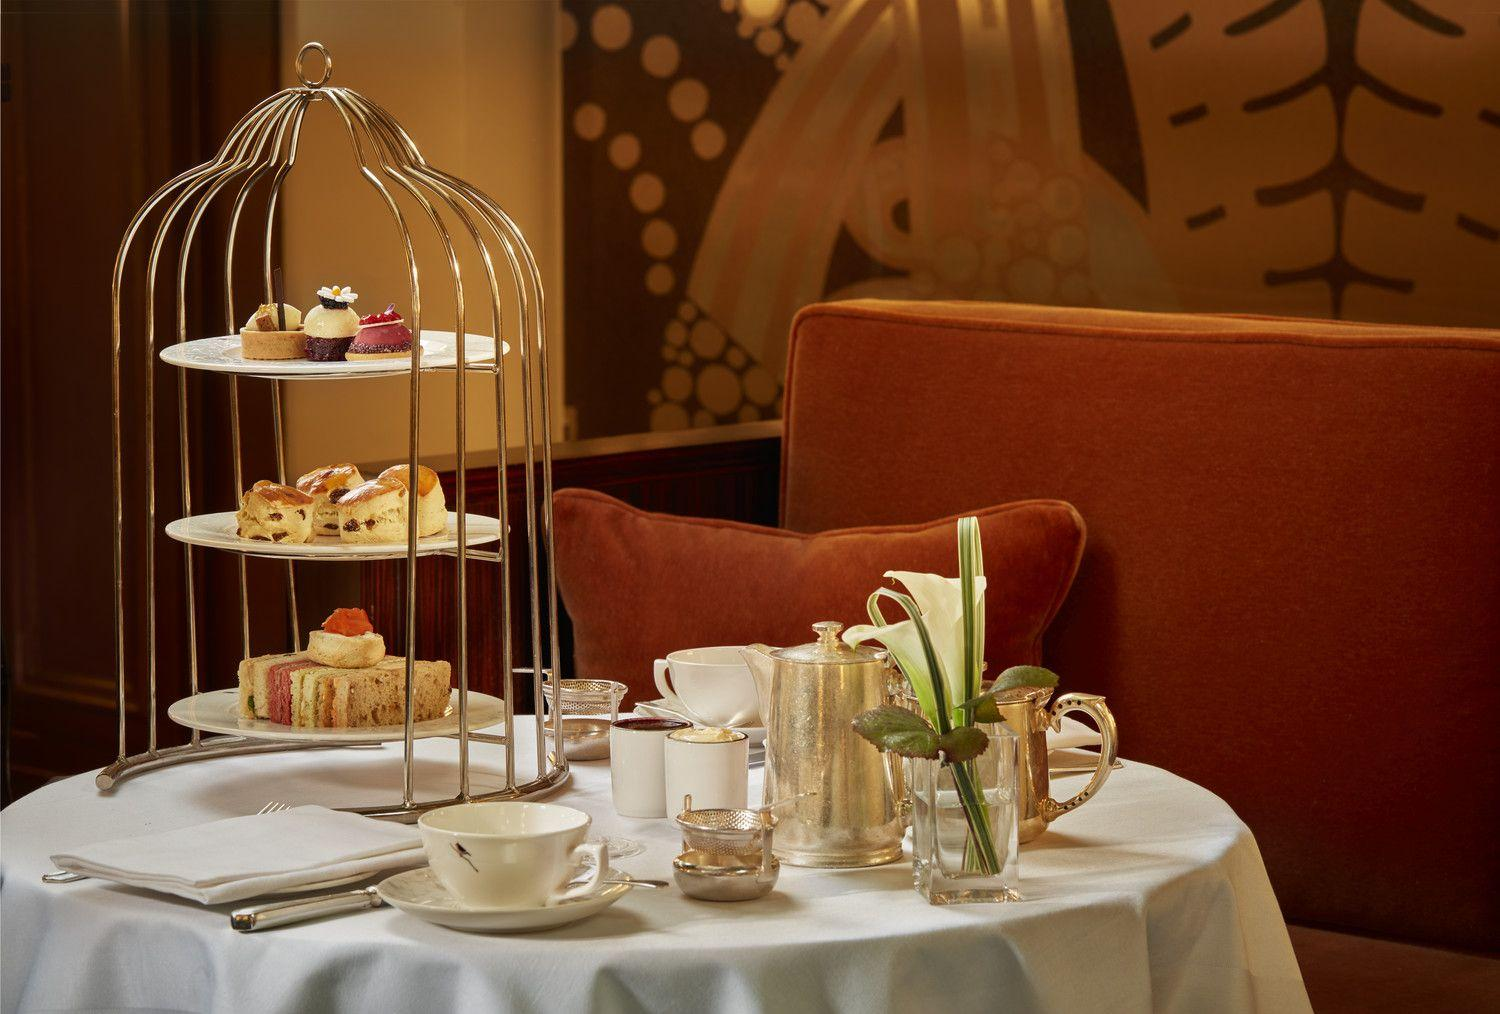 Afternoon Tea at The Sheraton Park Lane Hotel London